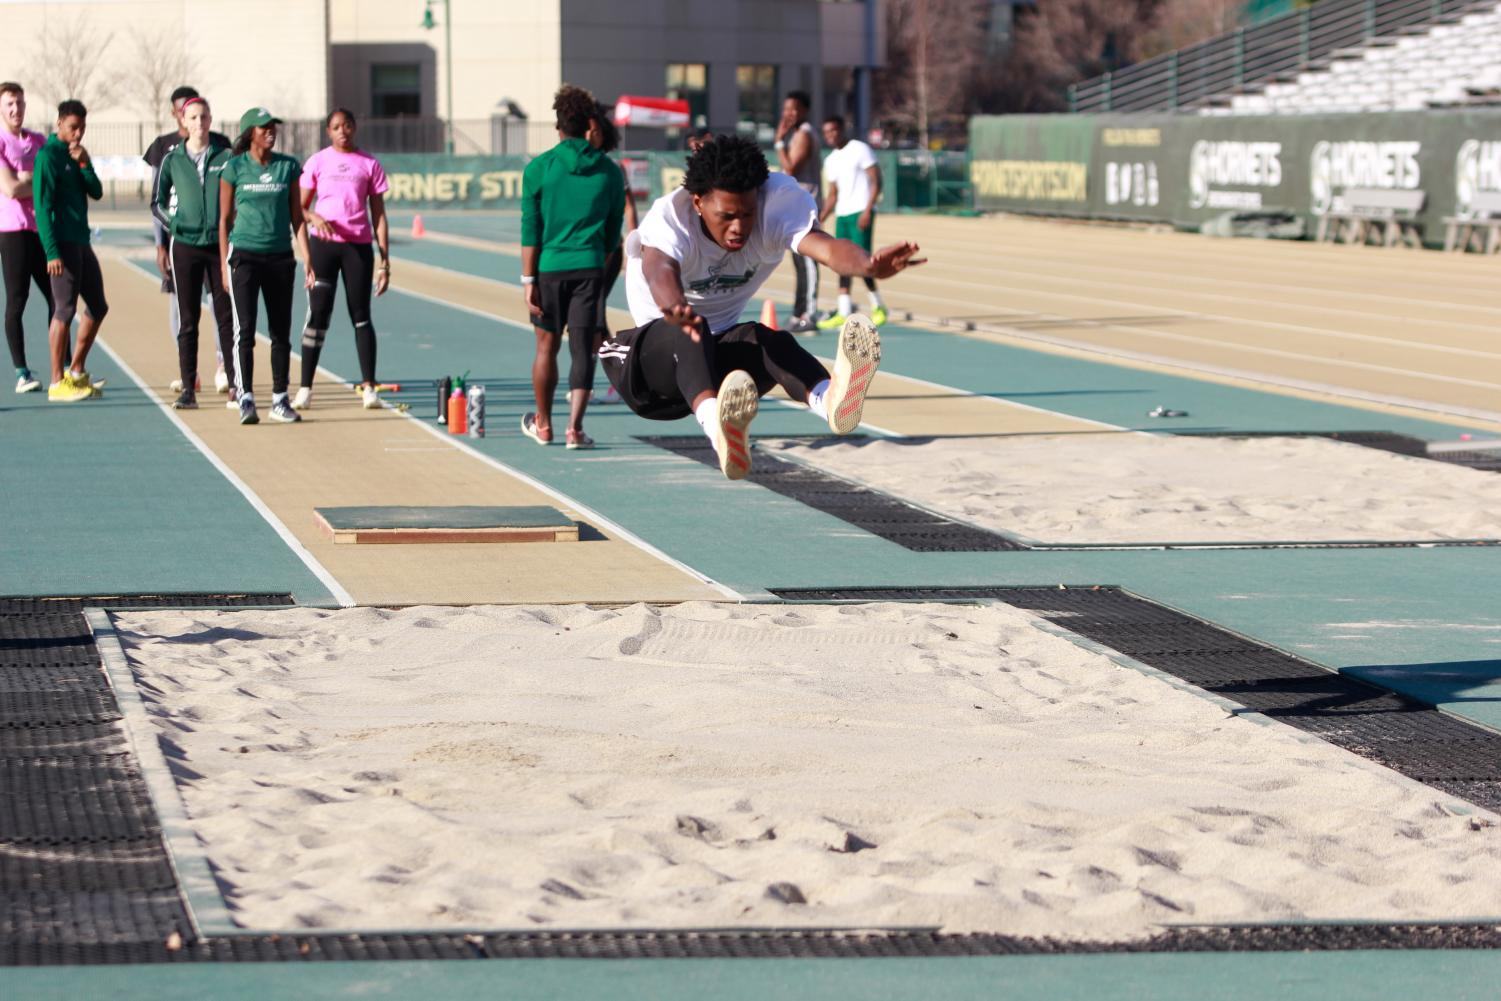 Sacramento State sophomore Jah Strange performs a triple jump during track practice on Feb. 14 at Hornet Stadium. Strange set a Sac State record for the men's indoor triple jump with a leap of 51 feet and three inches (51-03.50) on Feb. 3.